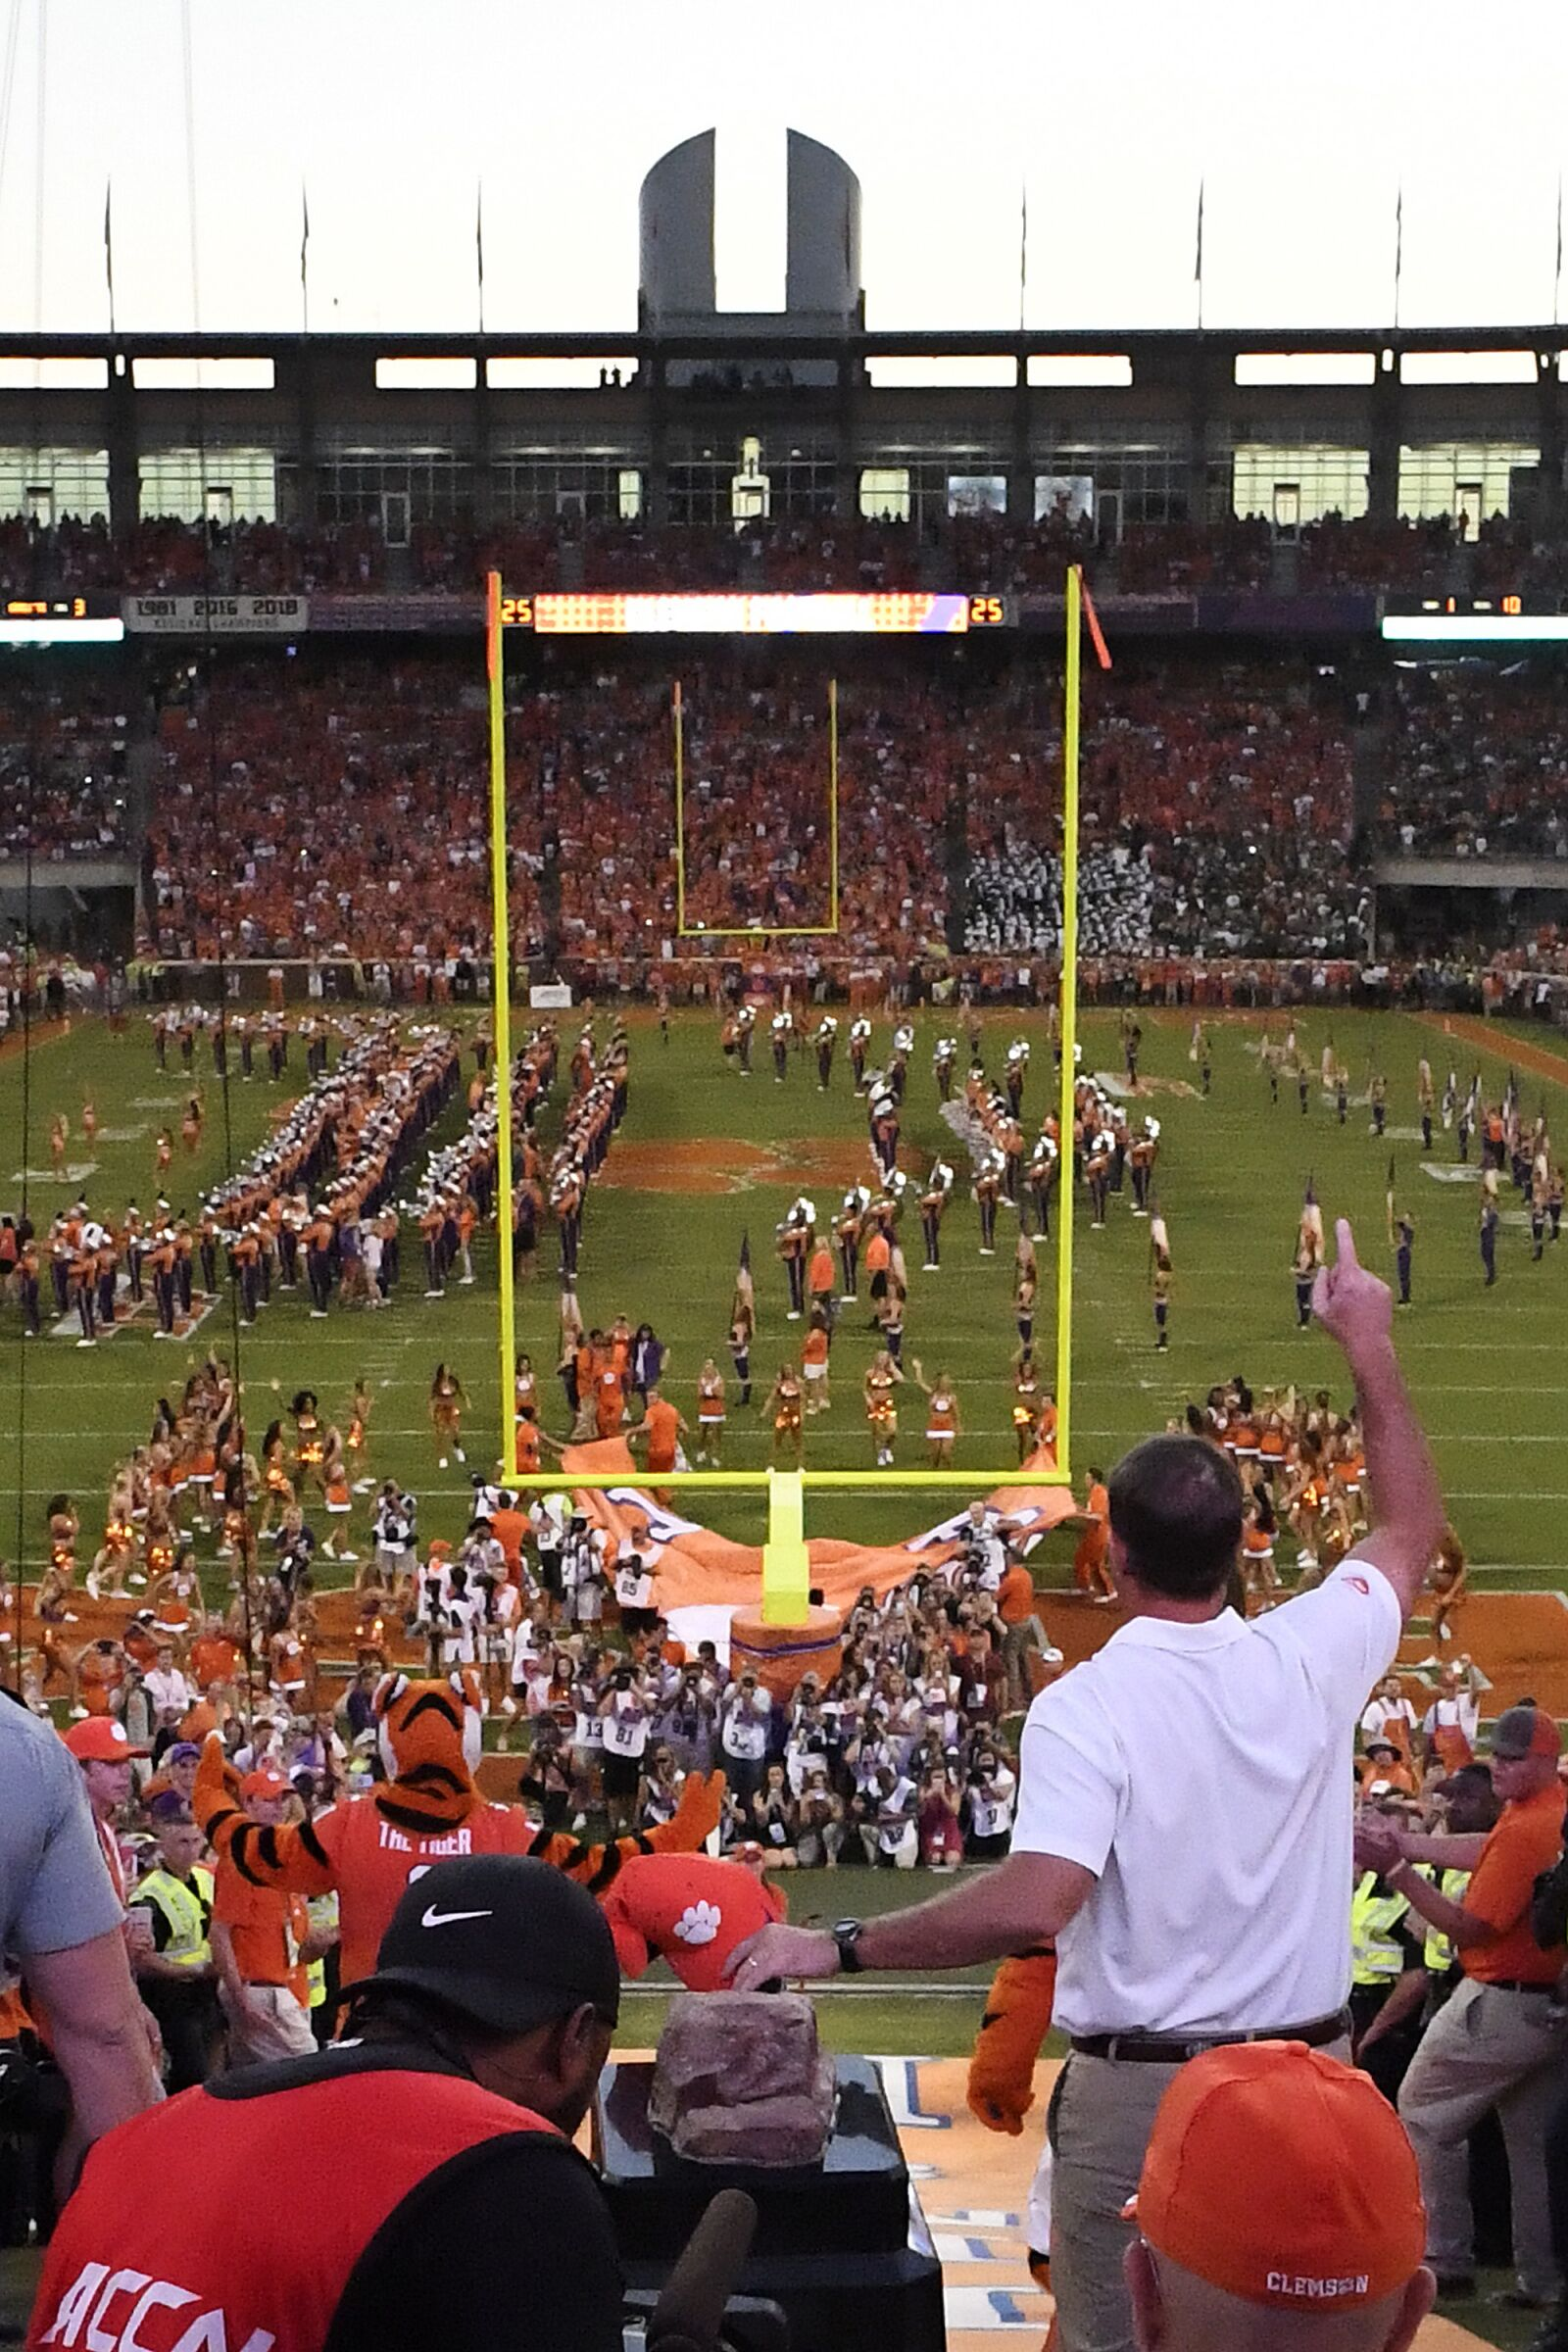 Clemson Football: Tiger fans killed it during Disney movie filming